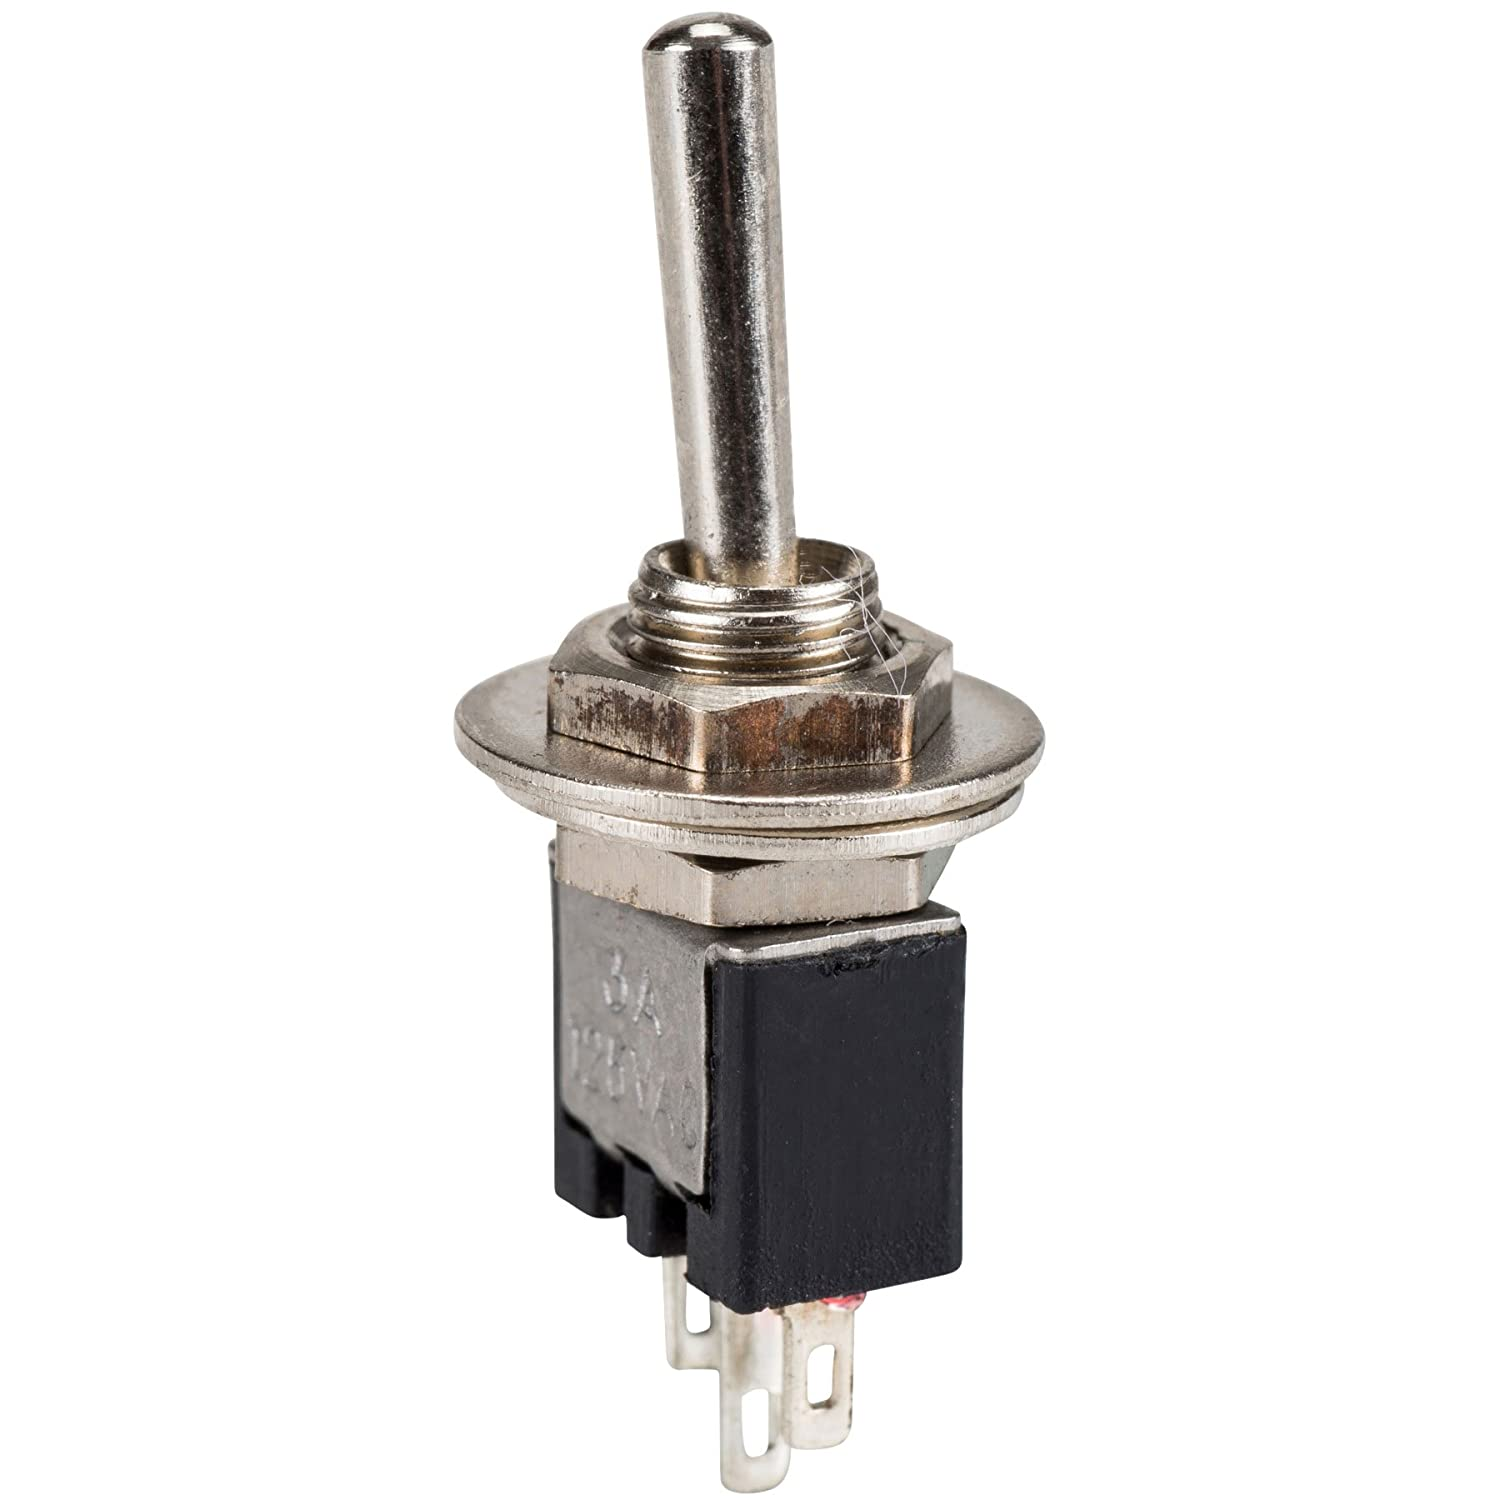 PARTS EXPRESS SPDT Sub-Mini Toggle Switch